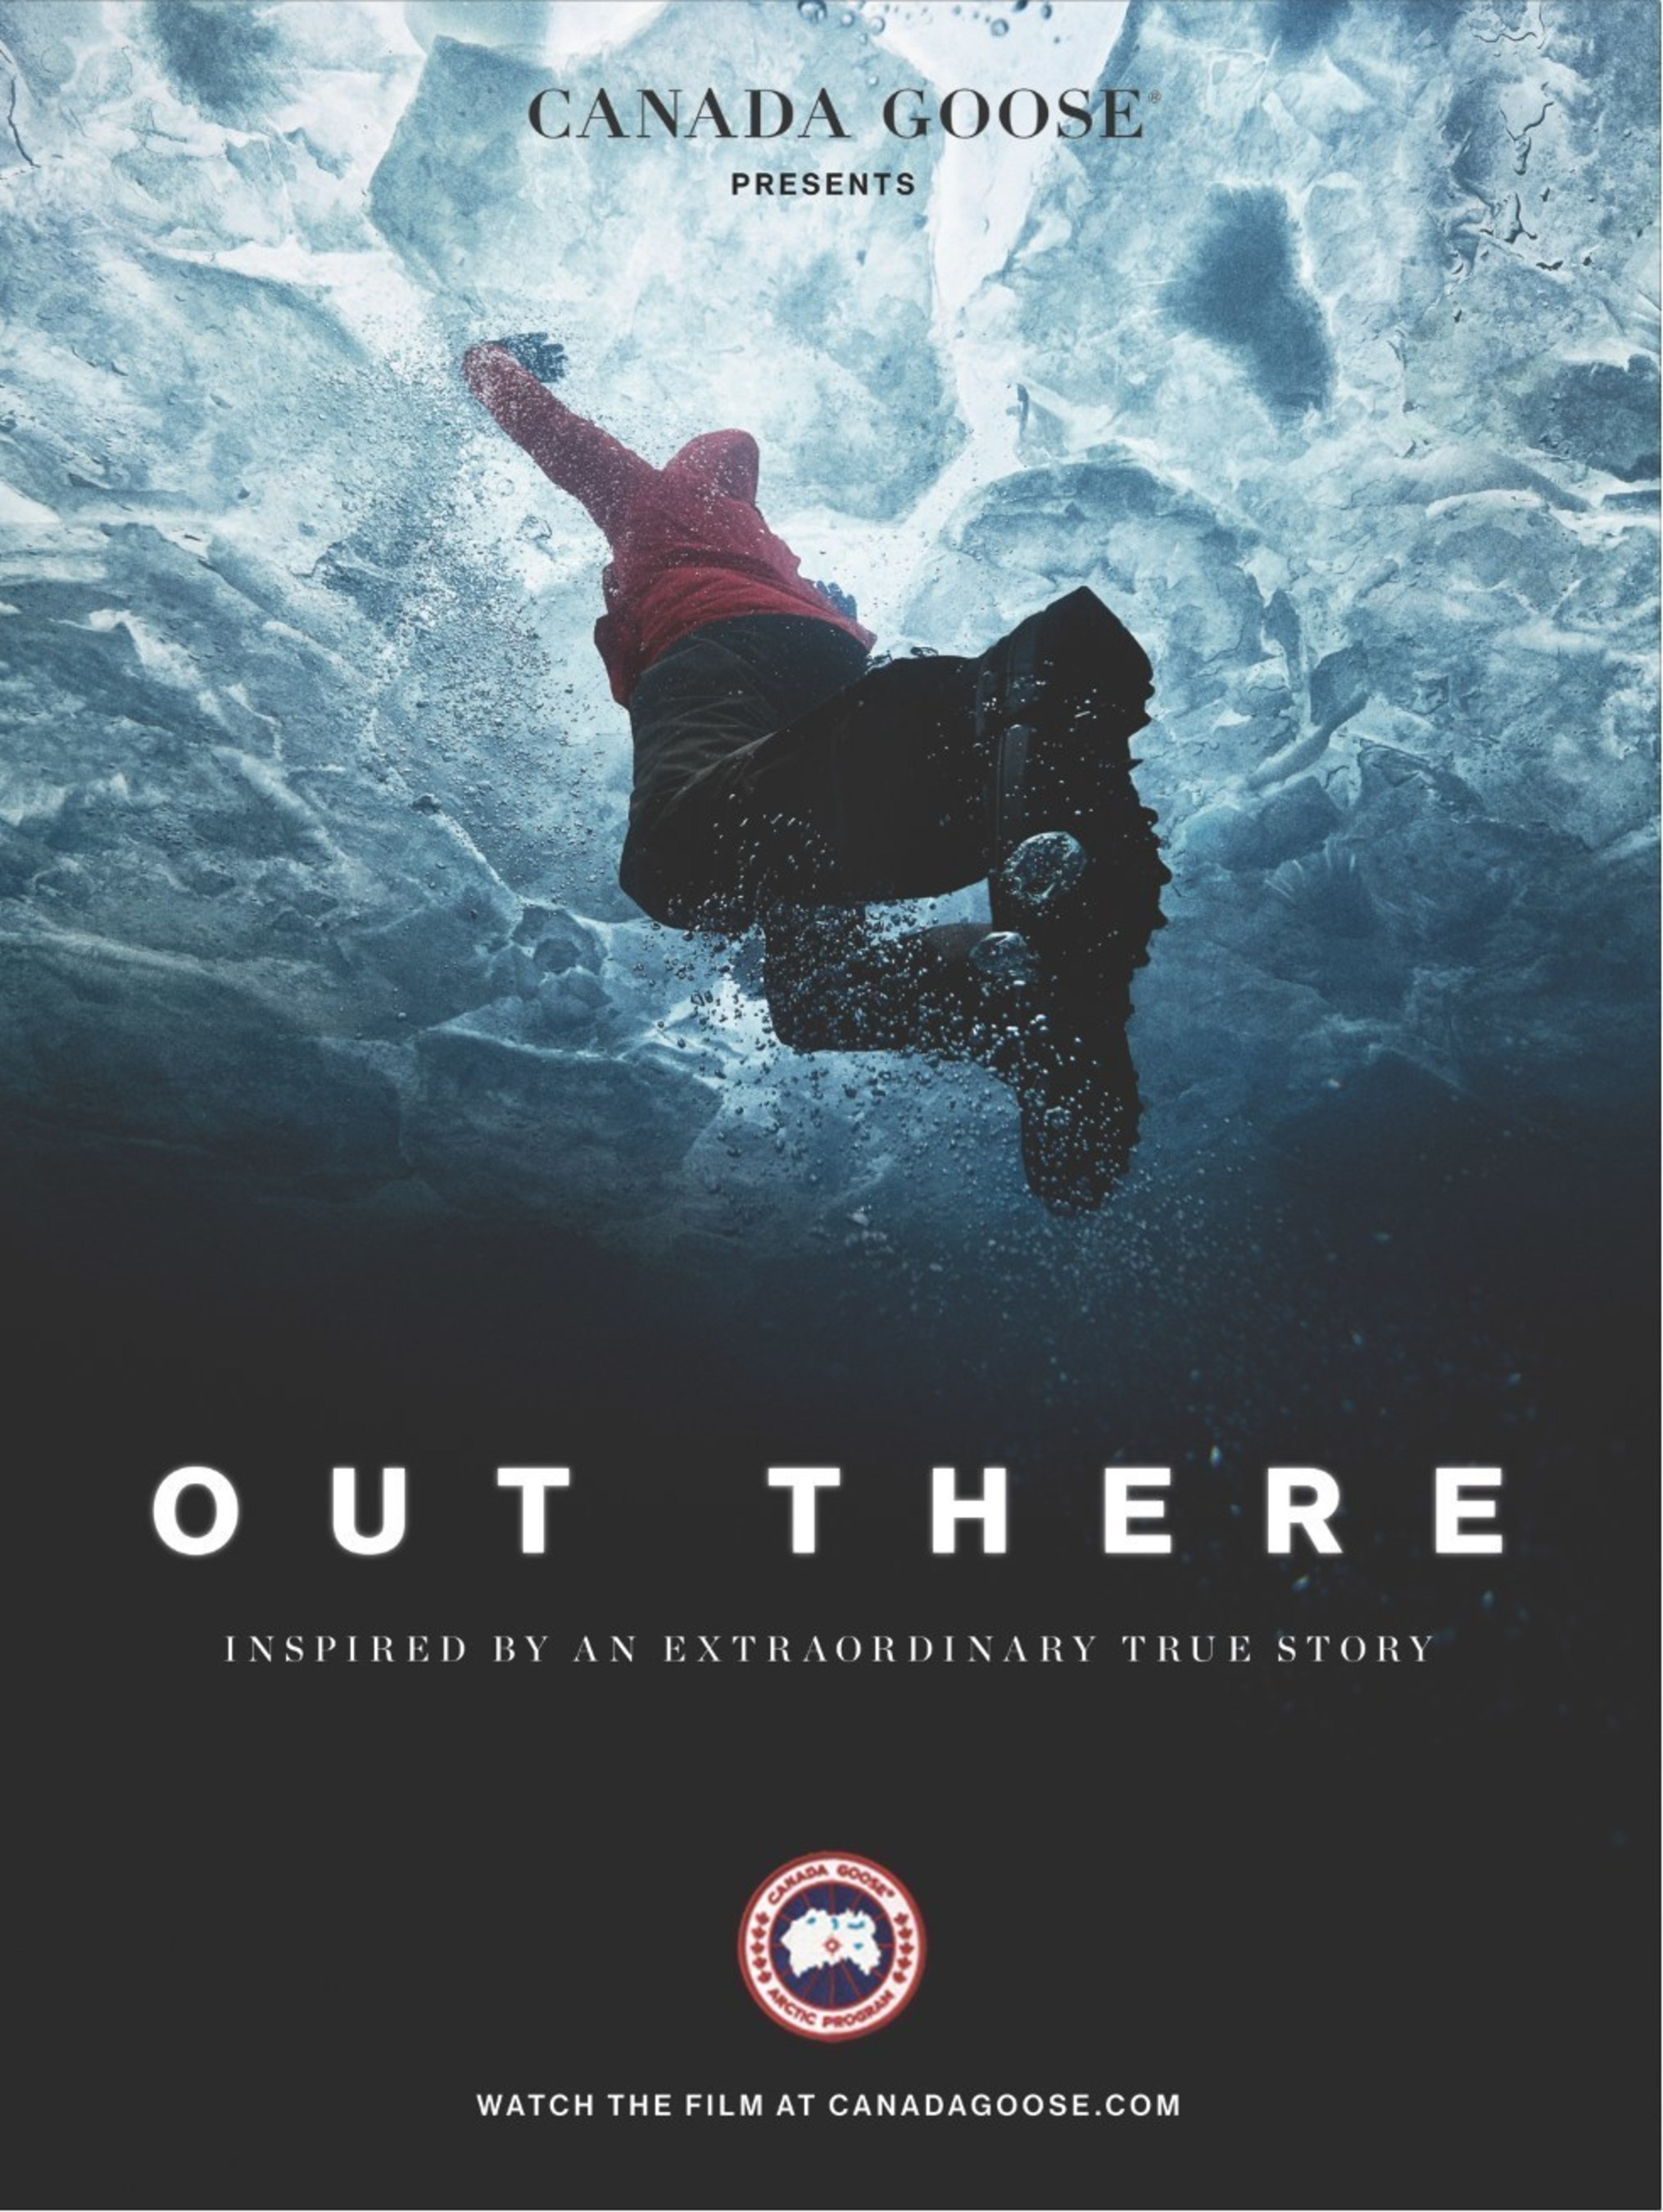 Canada Goose Releases 'OUT THERE' -- A Short Film Directed By Award-winning Filmmaker Paul Haggis